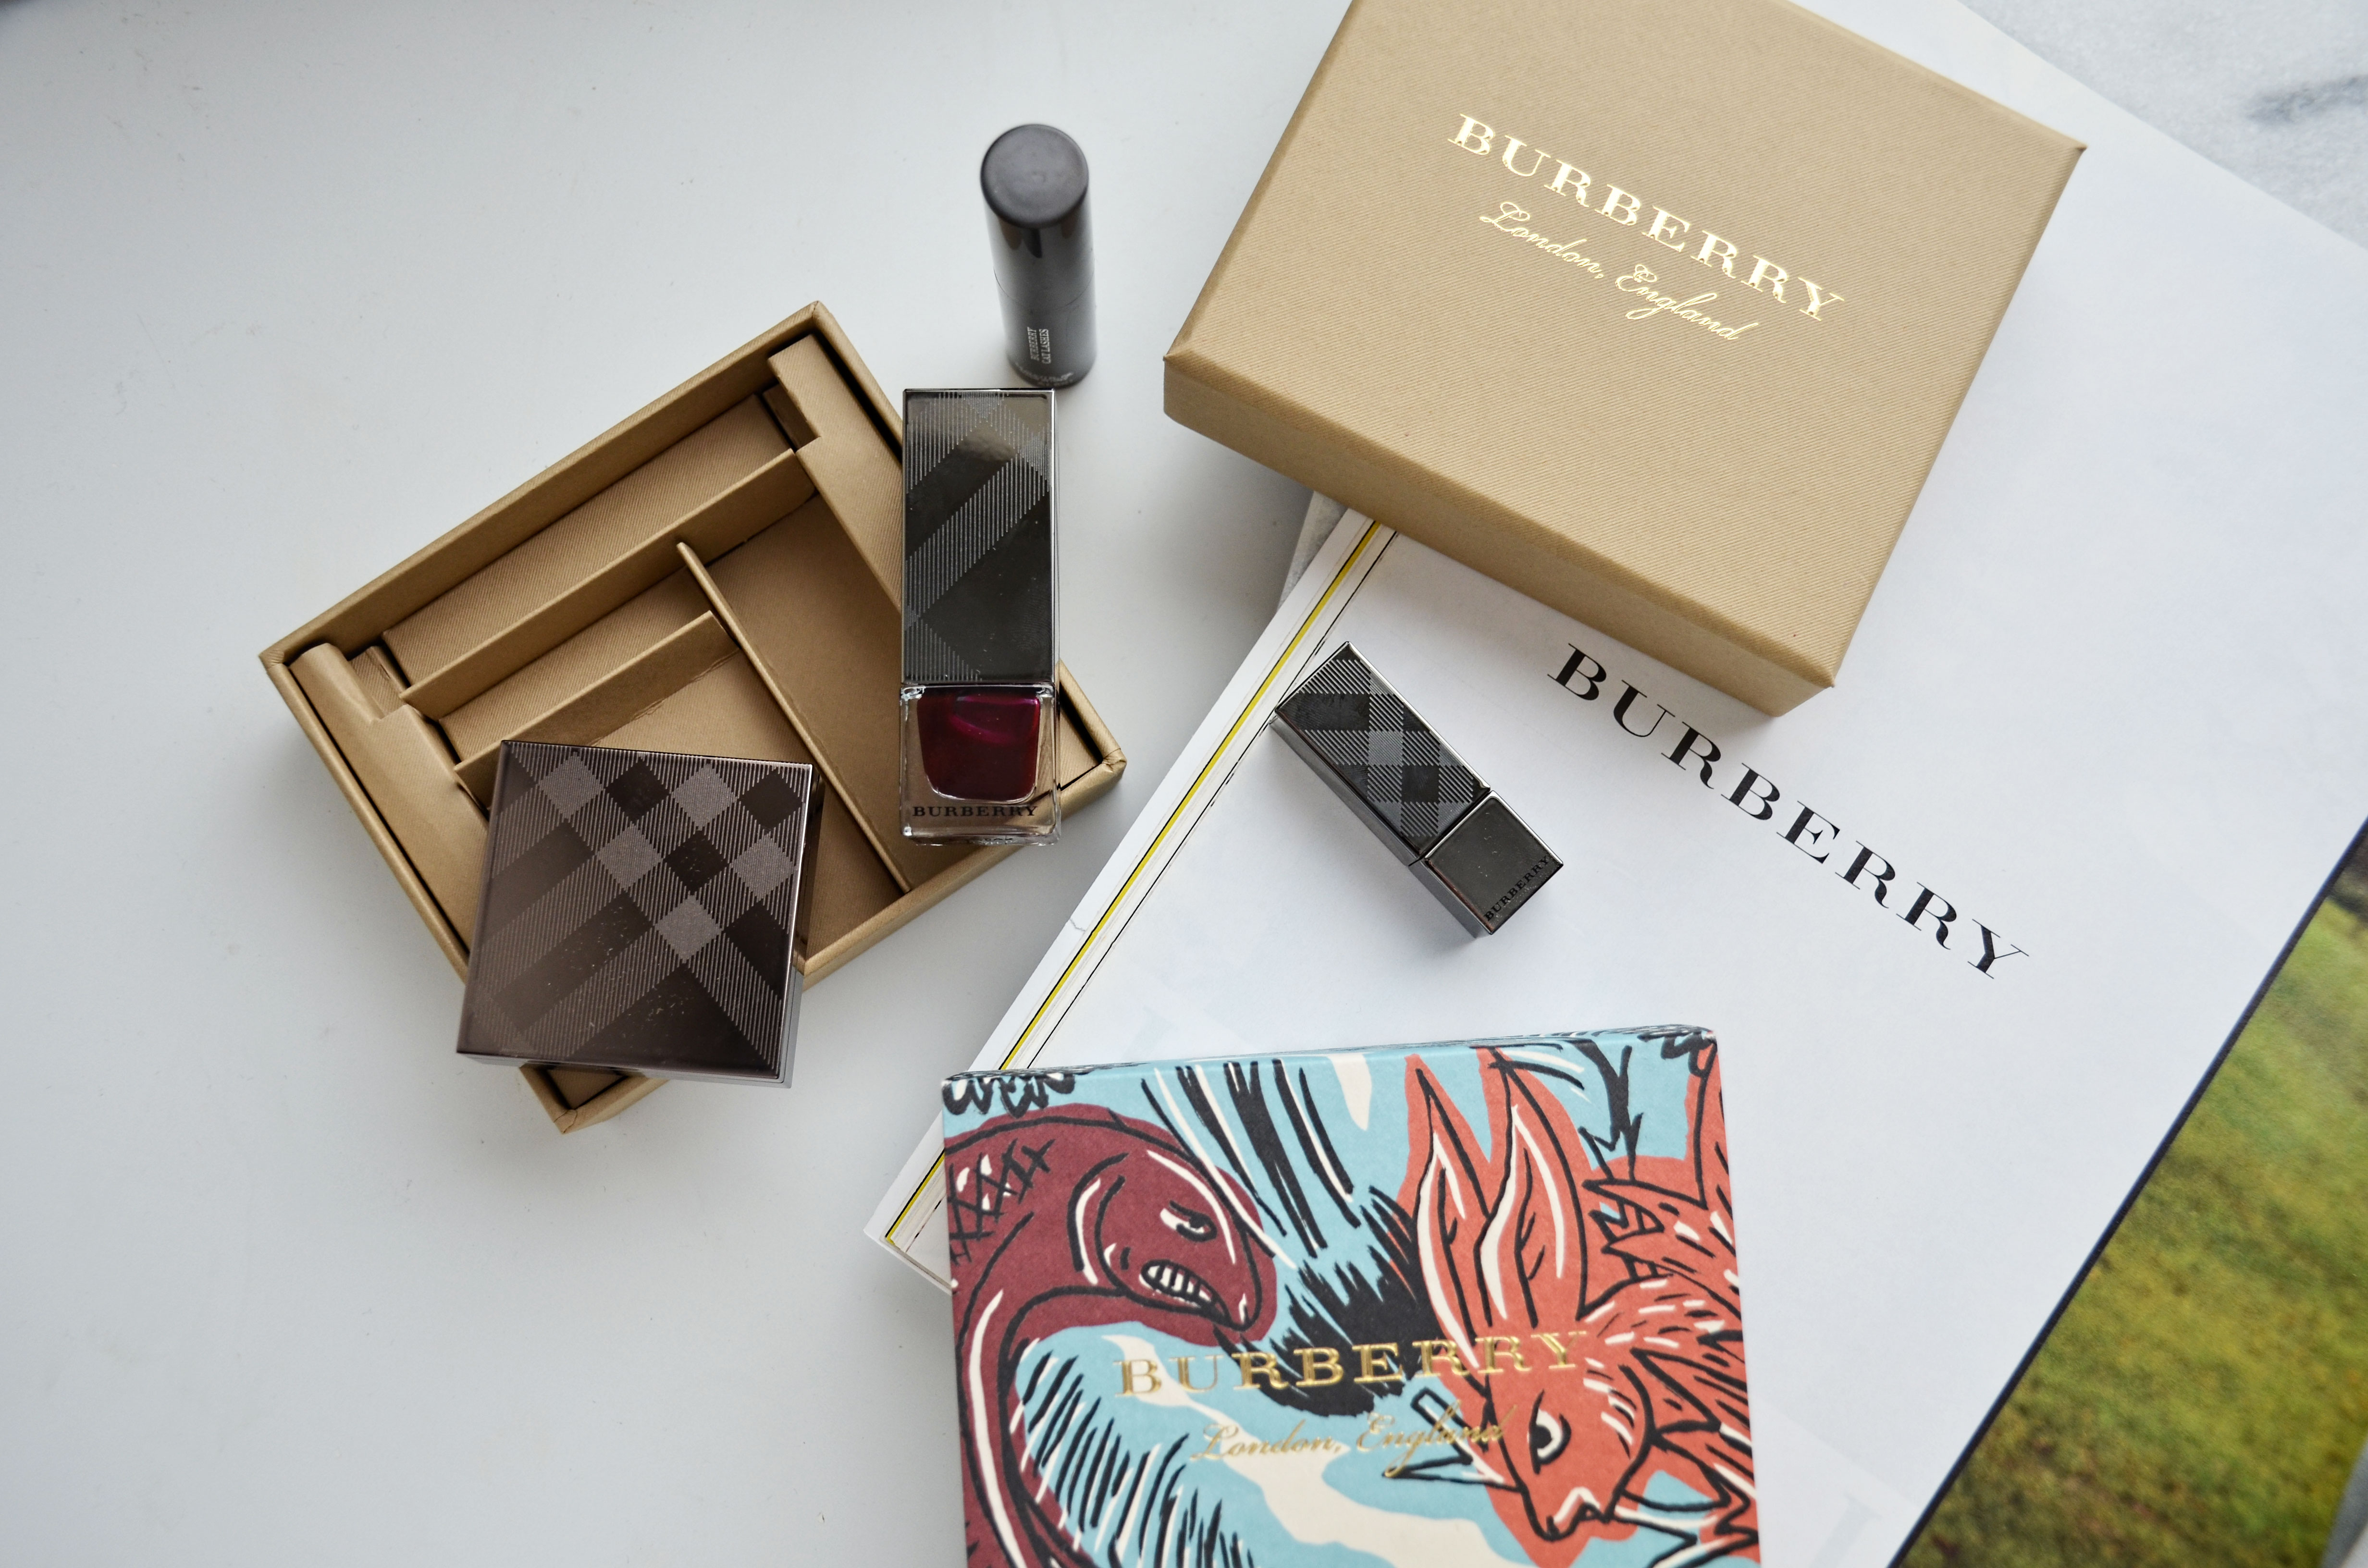 Burberry Beasts Beauty Box - Makeup-Sessions